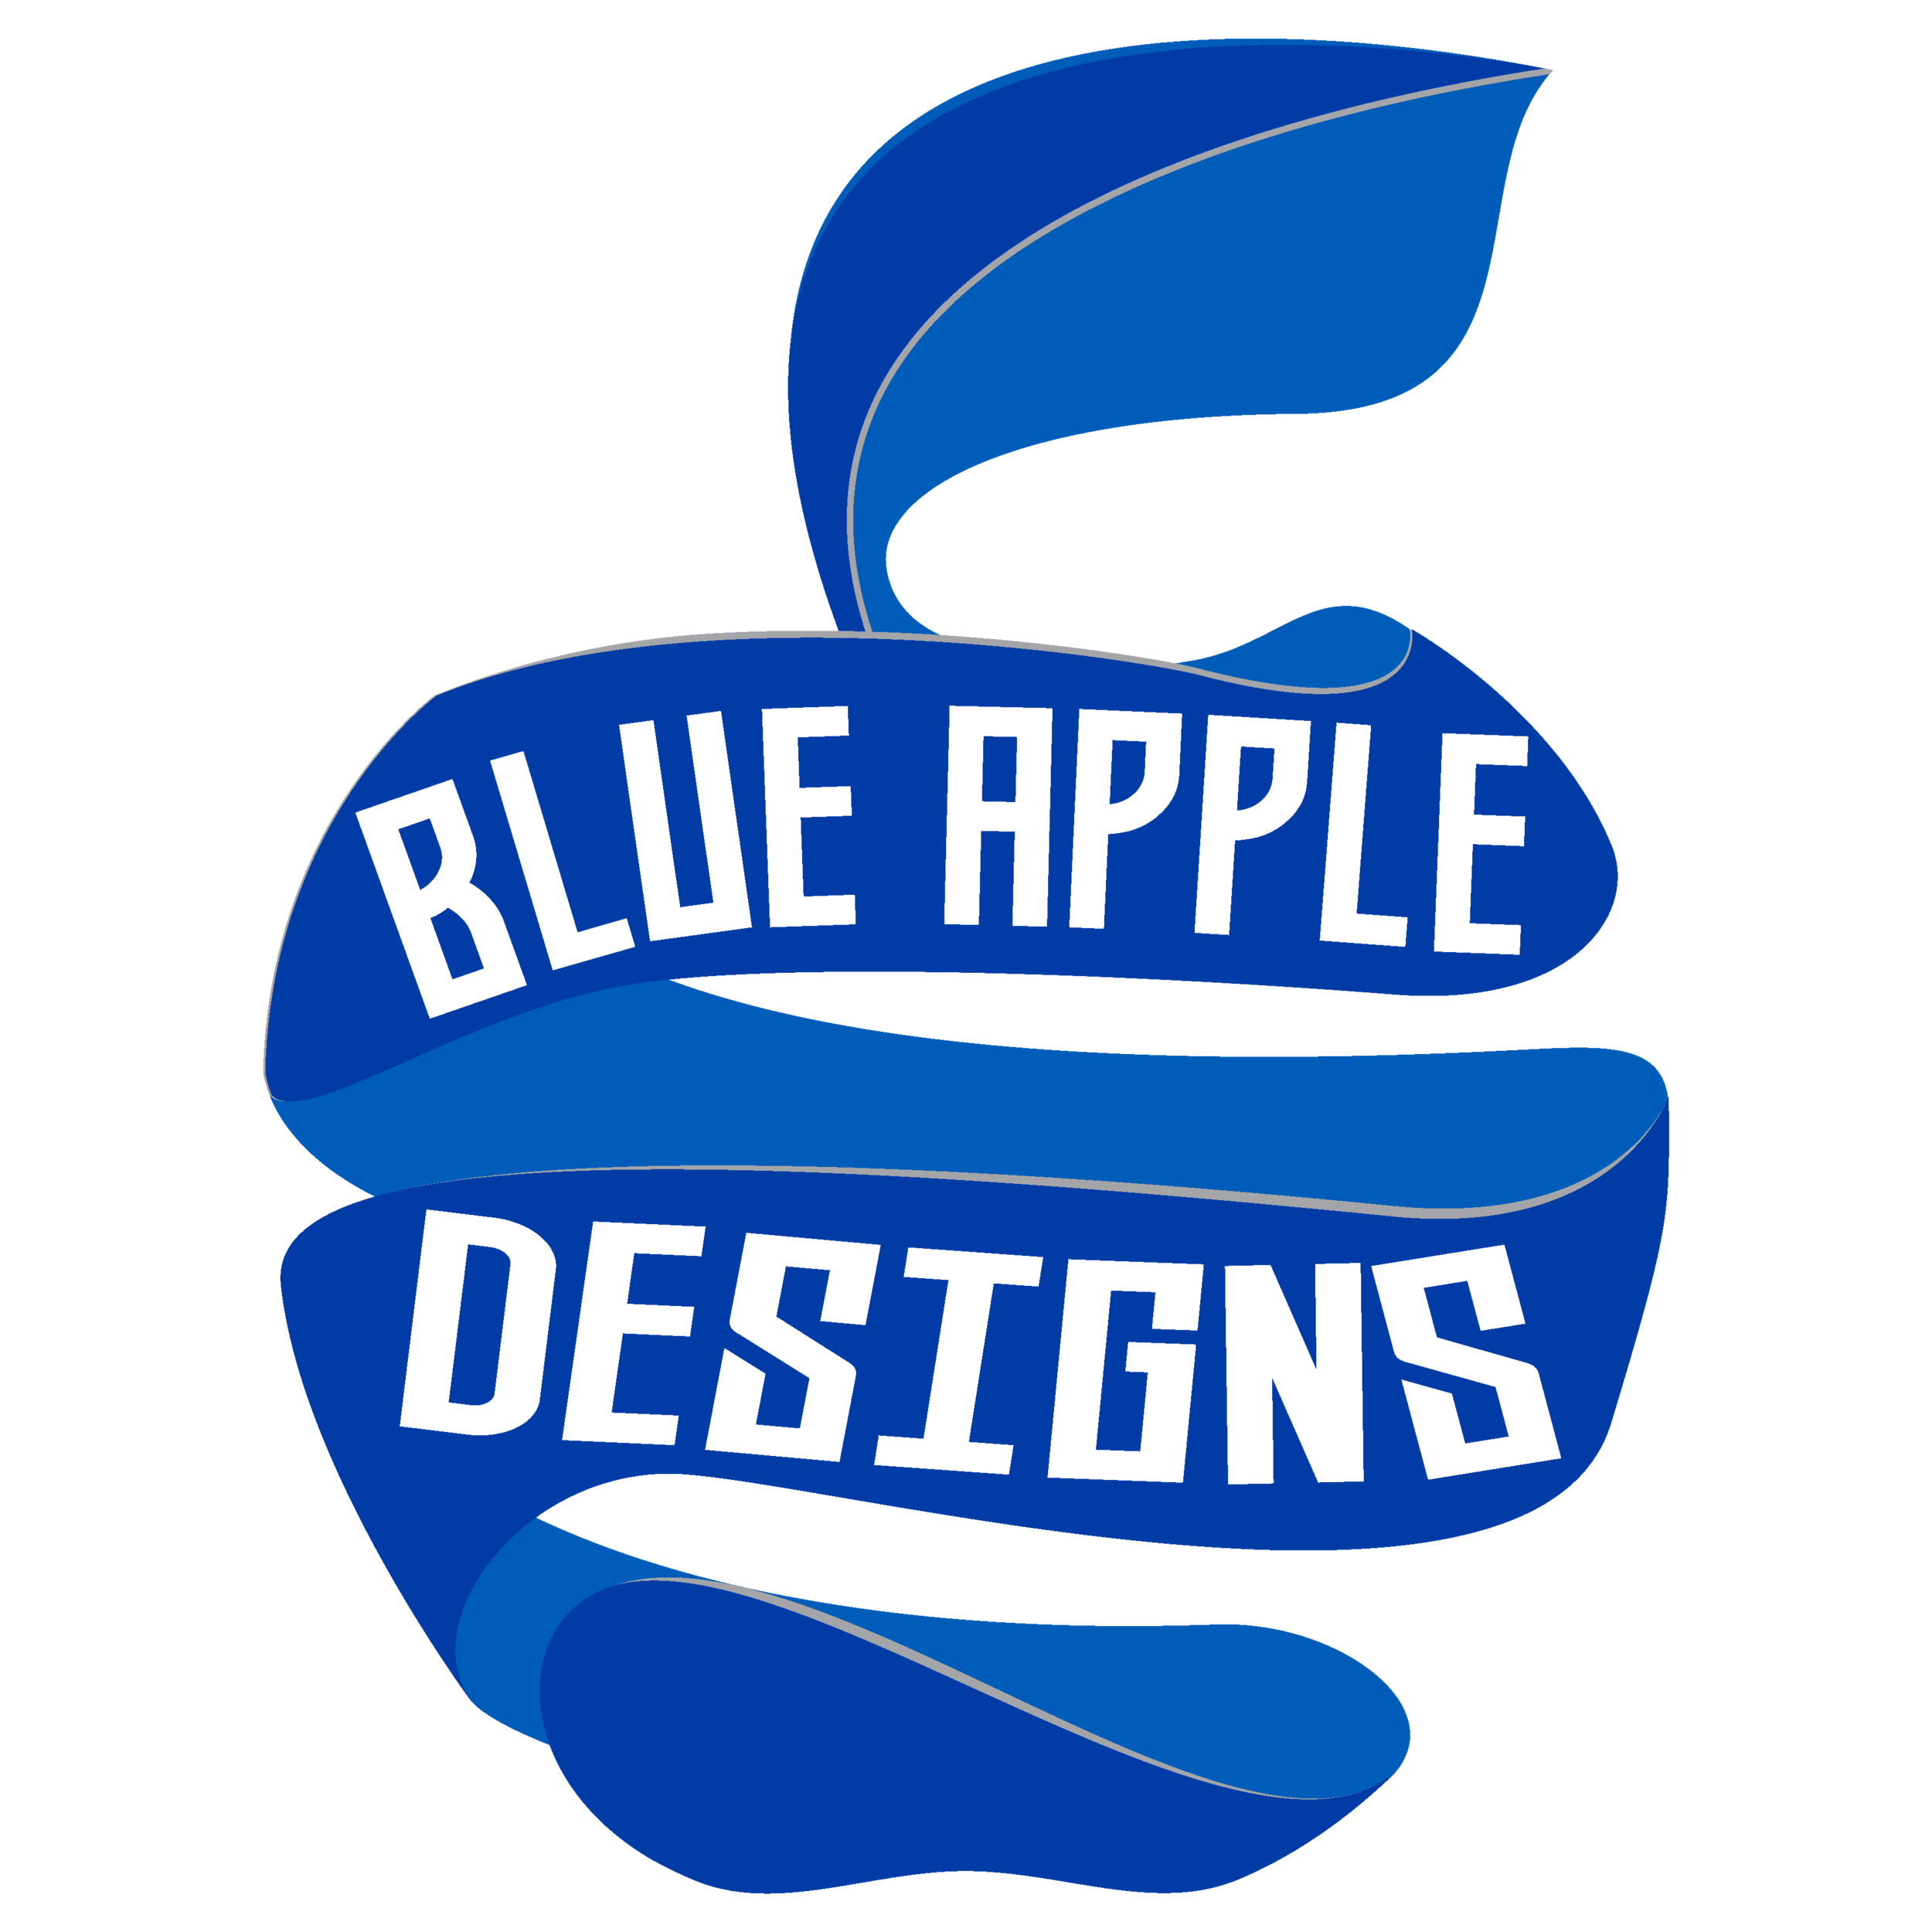 BLUE APPLE DESIGNS image black and white